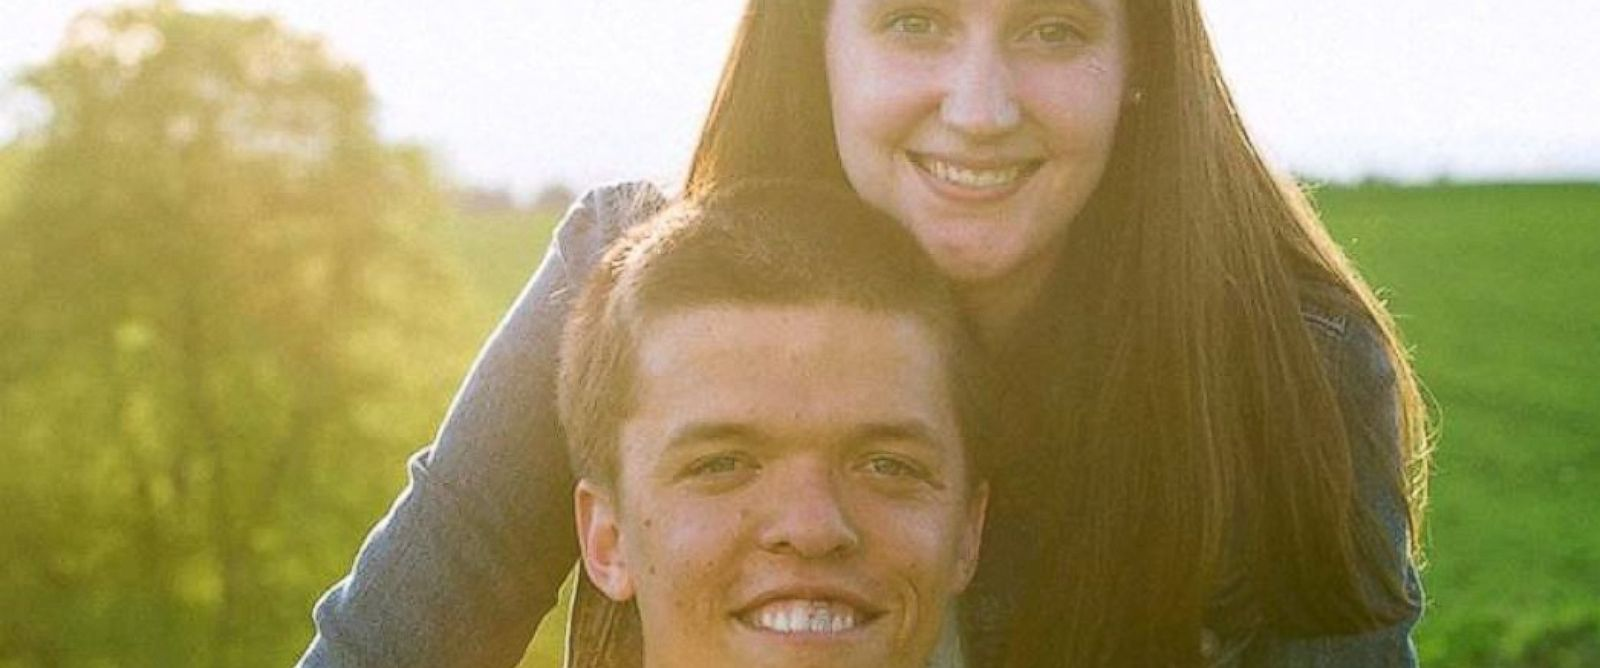 PHOTO: Zach Roloff is seen in this undated Facebook photo.